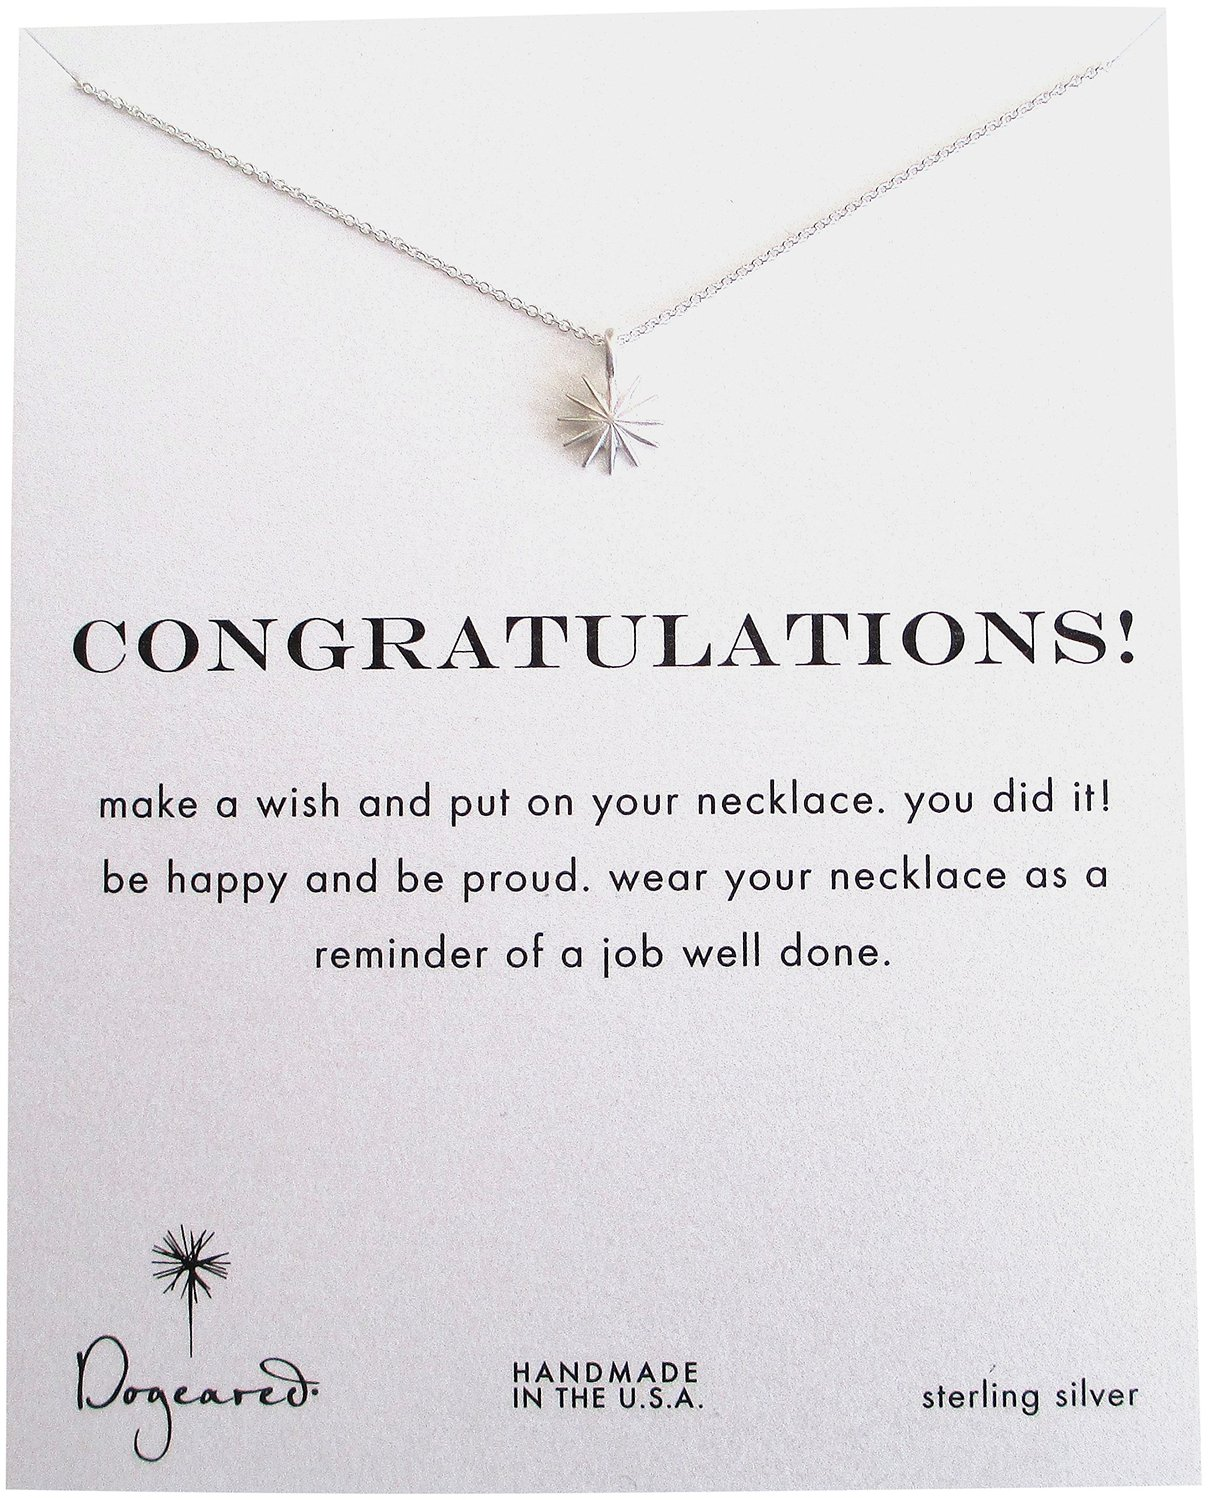 Dogeared Congratulations Sterling Silver Starburst Reminder Boxed Necklace - MS1857